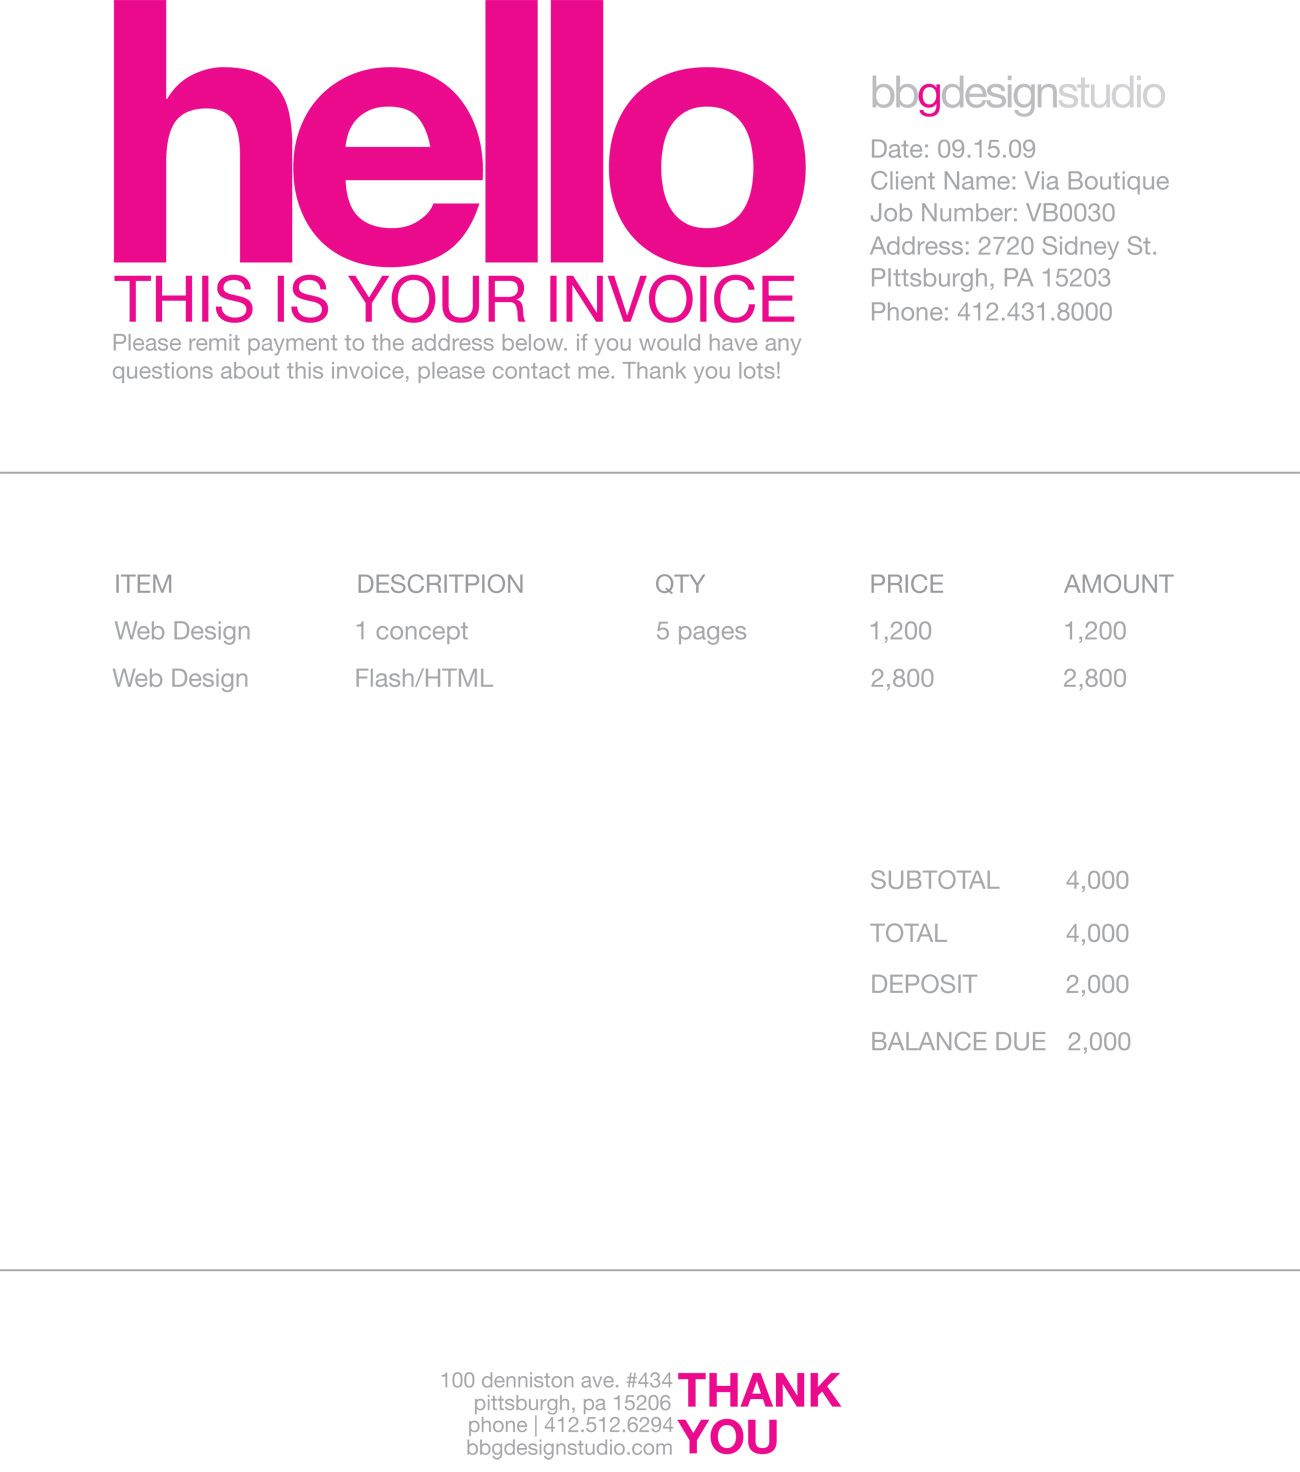 Reliefworkersus  Seductive  Images About Invoice Design On Pinterest With Likable Free Invoice Templates Besides Invoice Sample Furthermore Open Invoice With Extraordinary Microsoft Word Invoice Template Also Sample Invoice Template In Addition Word Invoice Template And Commercial Invoice As Well As What Does Invoice Mean Additionally Whats An Invoice From Pinterestcom With Reliefworkersus  Likable  Images About Invoice Design On Pinterest With Extraordinary Free Invoice Templates Besides Invoice Sample Furthermore Open Invoice And Seductive Microsoft Word Invoice Template Also Sample Invoice Template In Addition Word Invoice Template From Pinterestcom